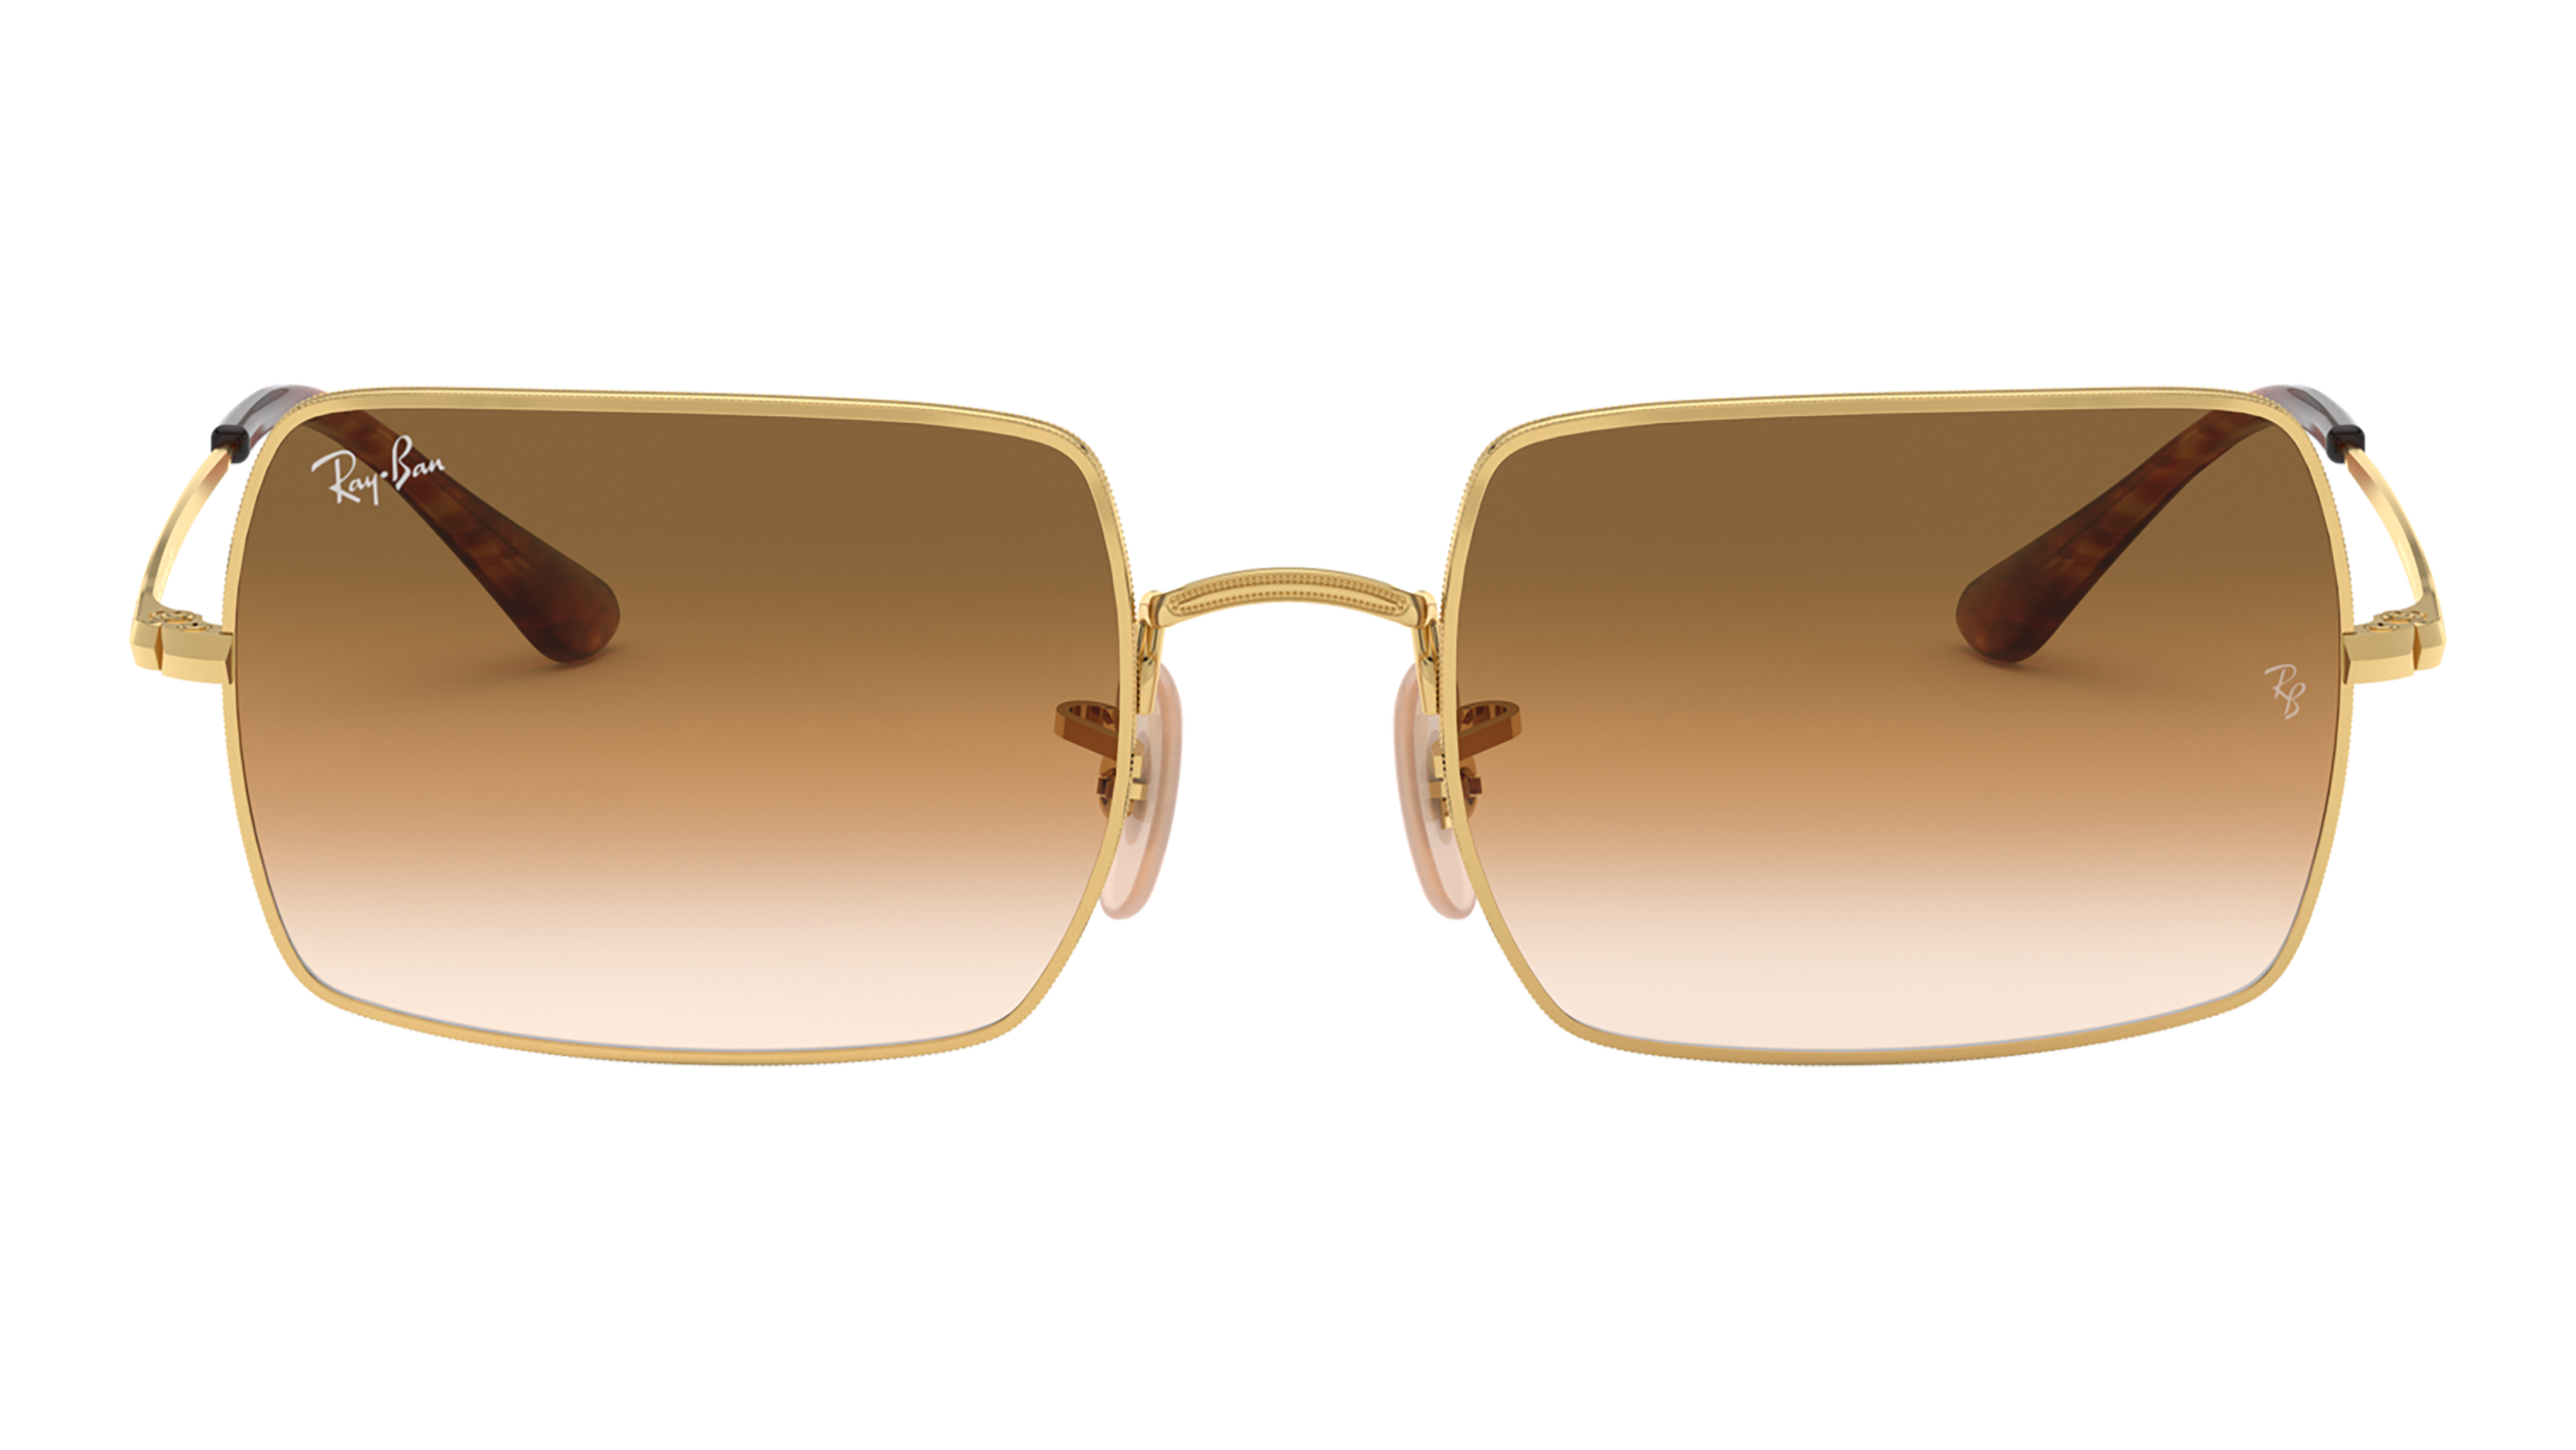 Front Ray-Ban Ray-Ban 0RB1969 914751 54/19 Goud/Bruin